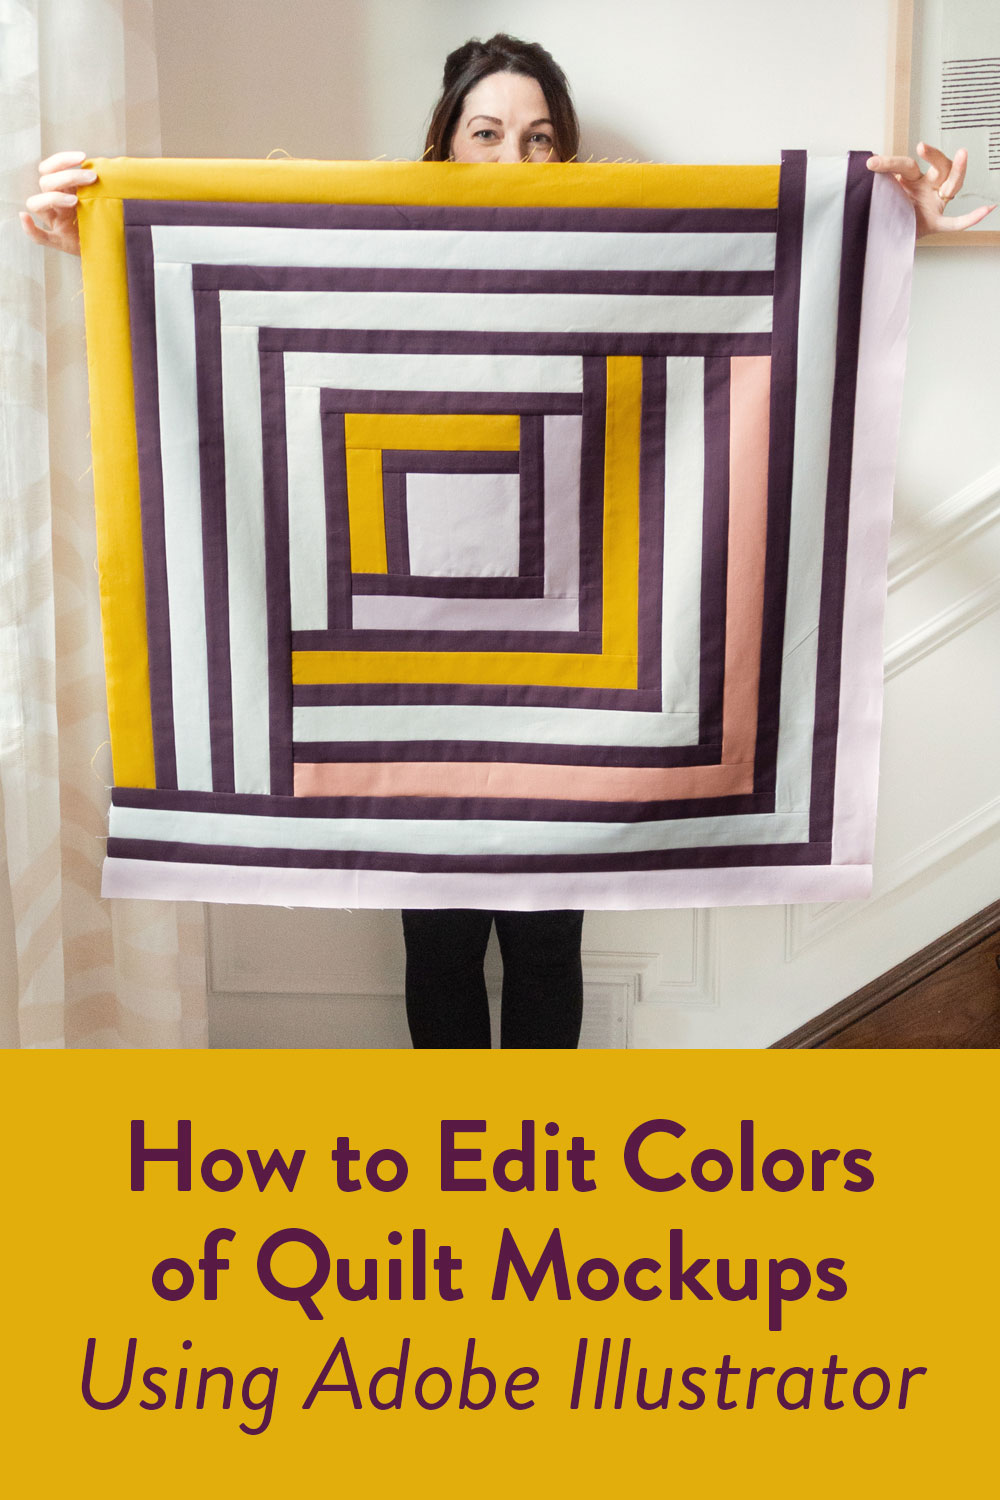 If you are a planner, or maybe have trouble picking fabrics for a quilt, check out this video tutorial showing you how to edit digital quilt mockups to test out various colors and swatches. This is an Adobe Illustrator tutorial.